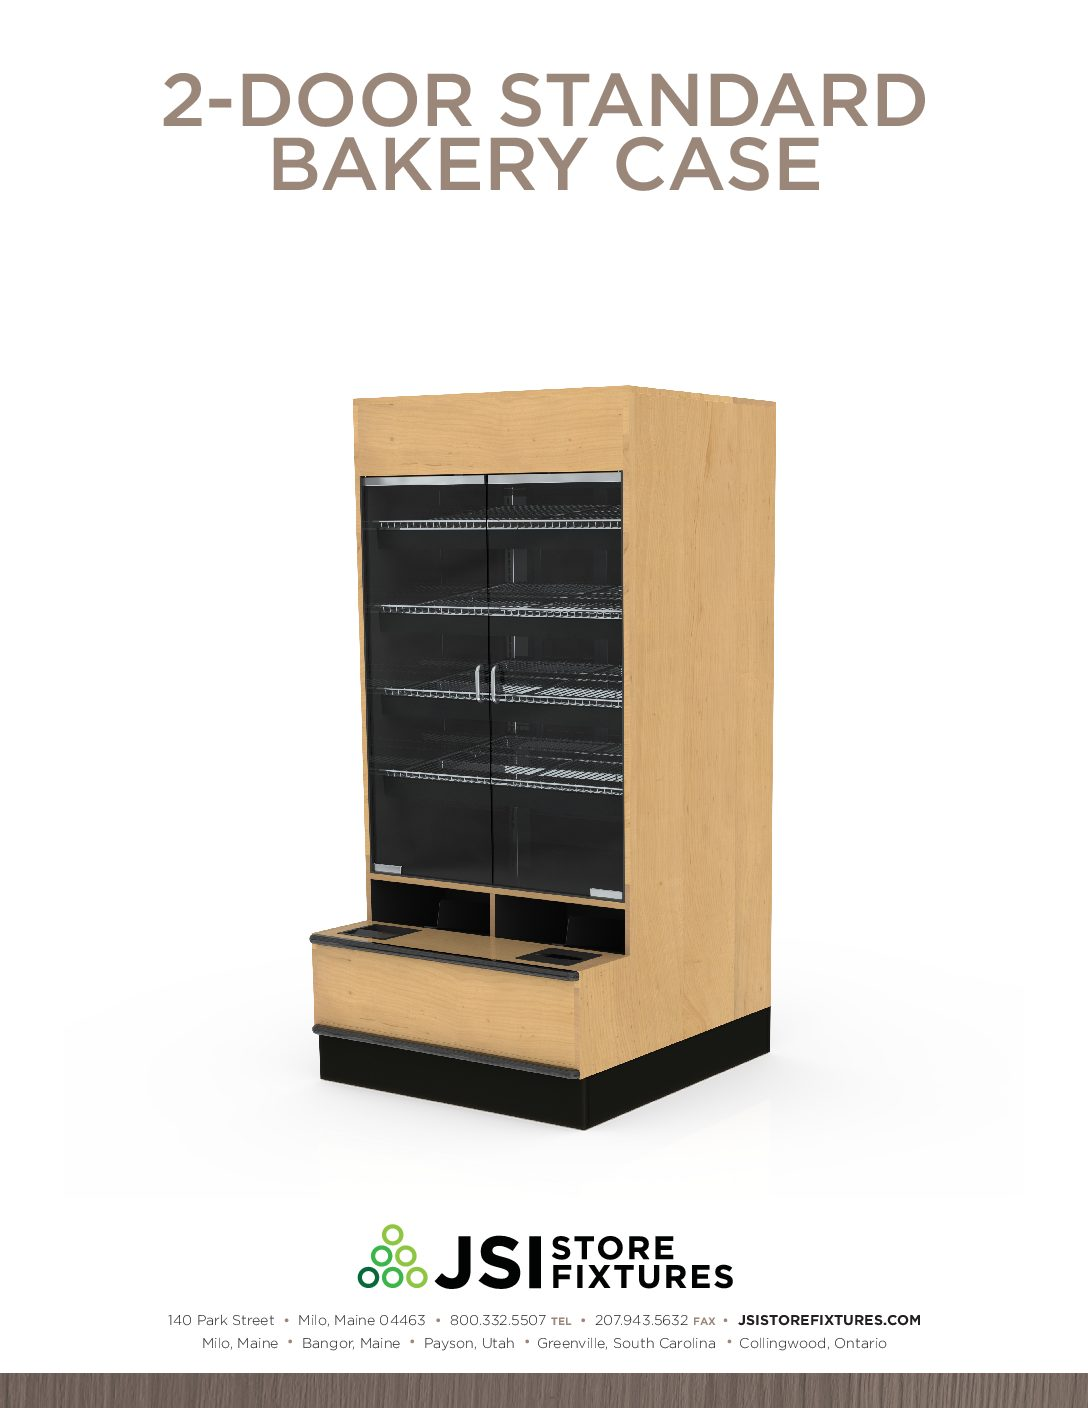 2-Door Standard Bakery Case Spec Sheet